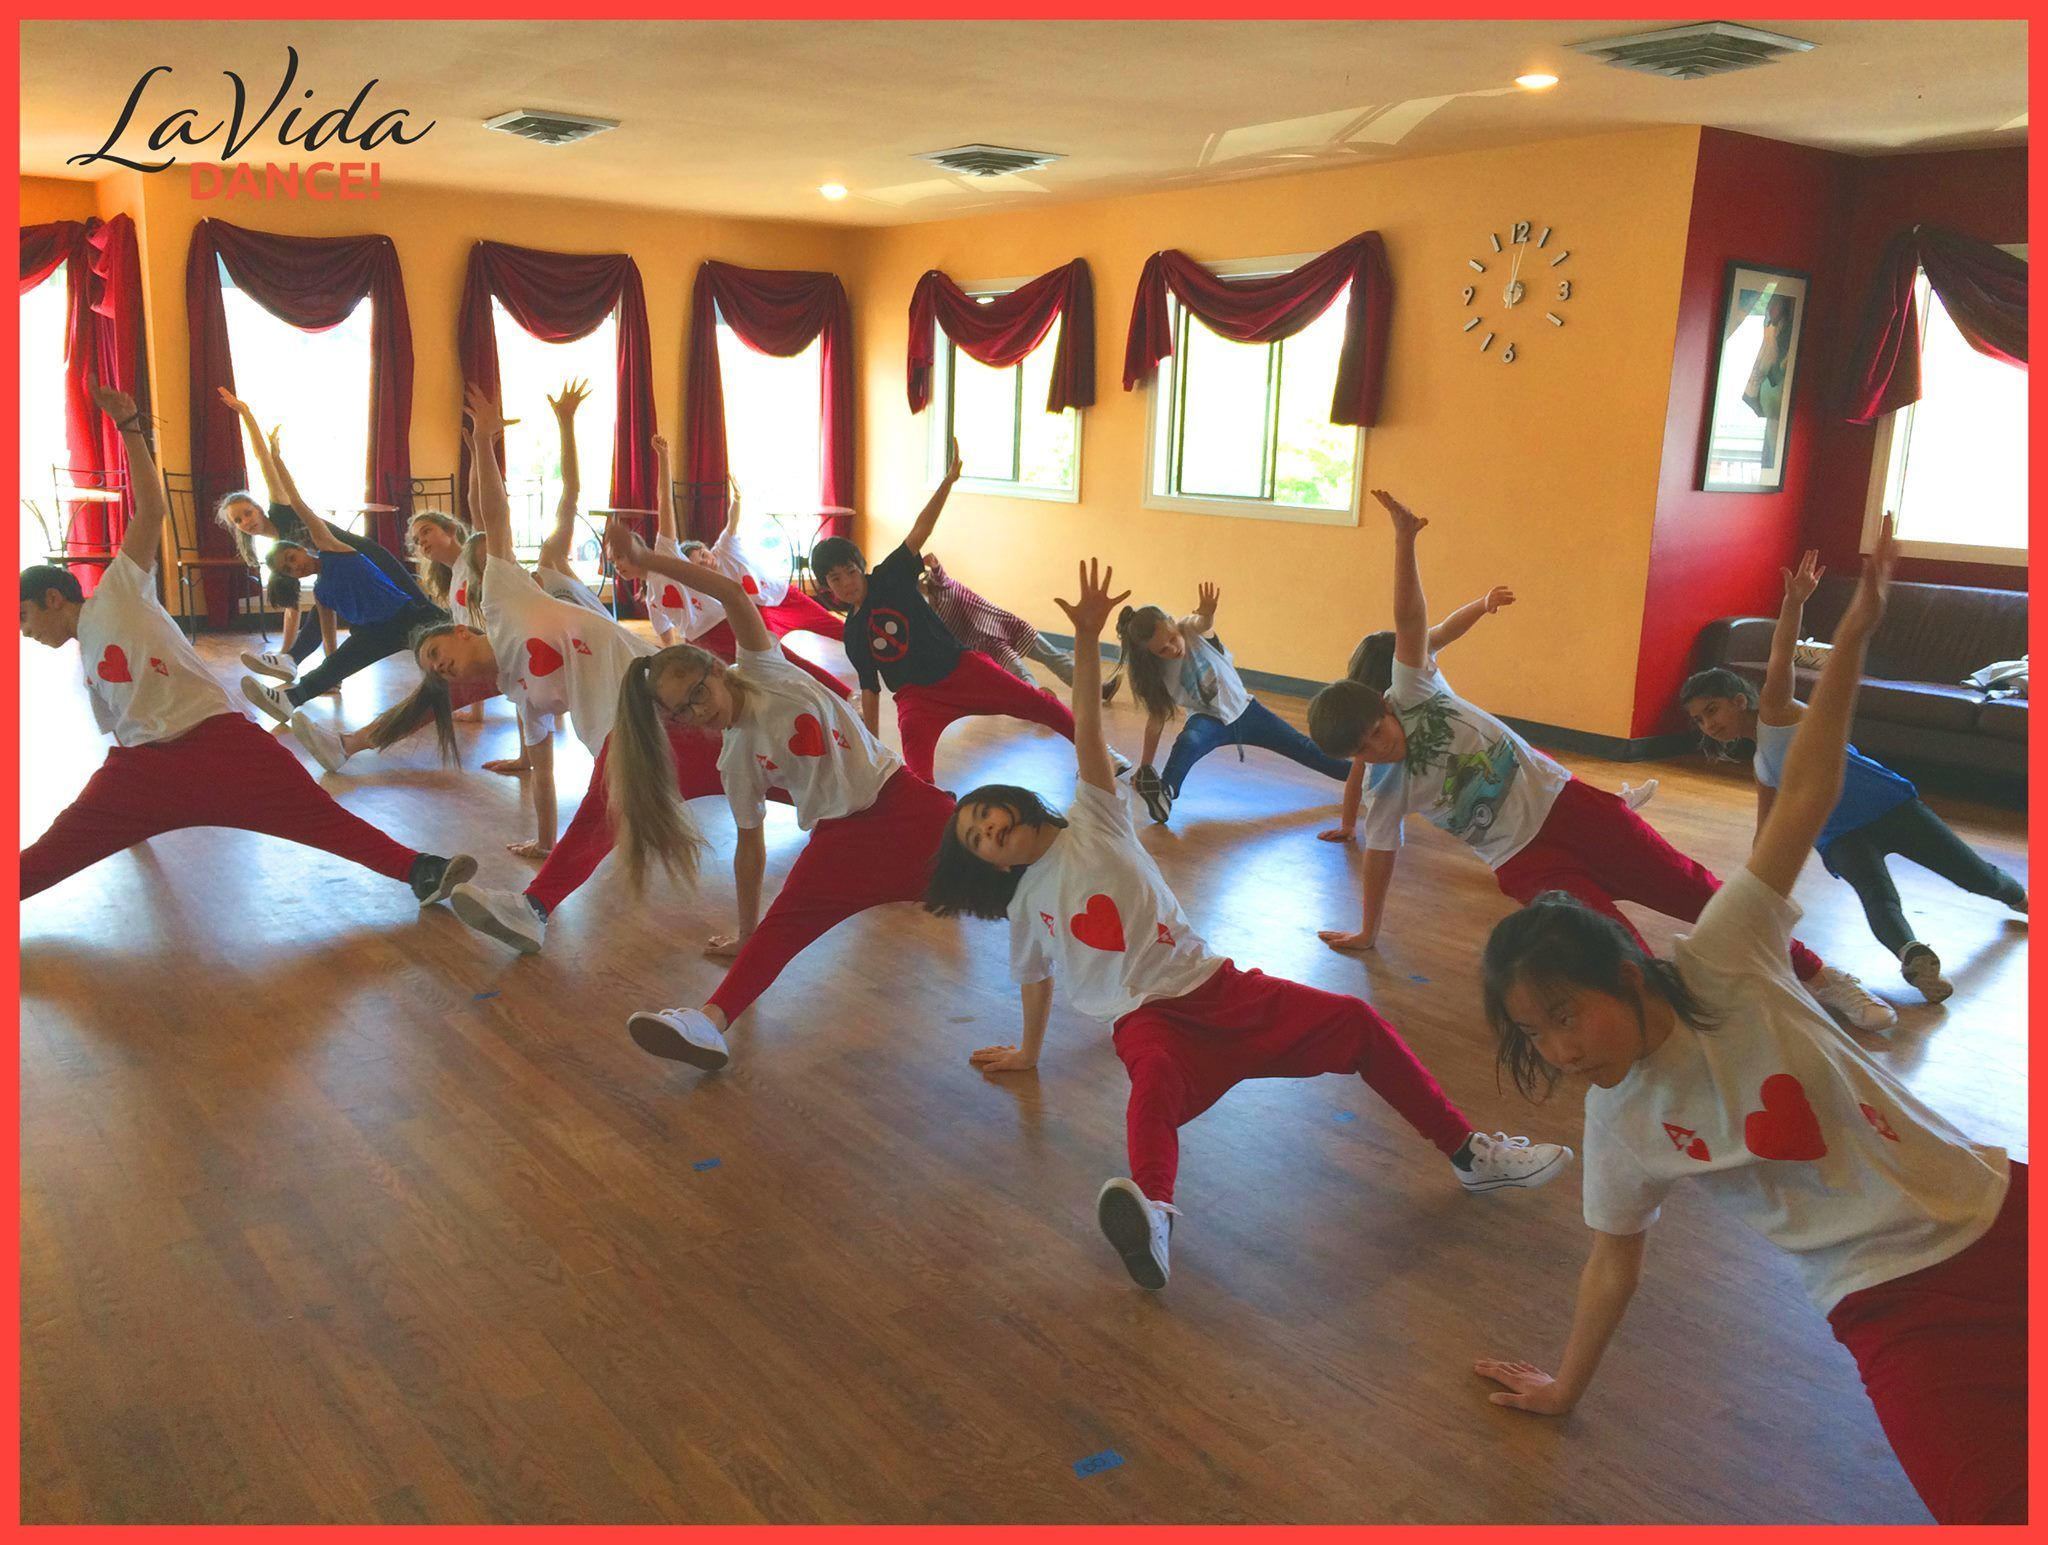 NEW: HipHop ages 6-15! Try FREE